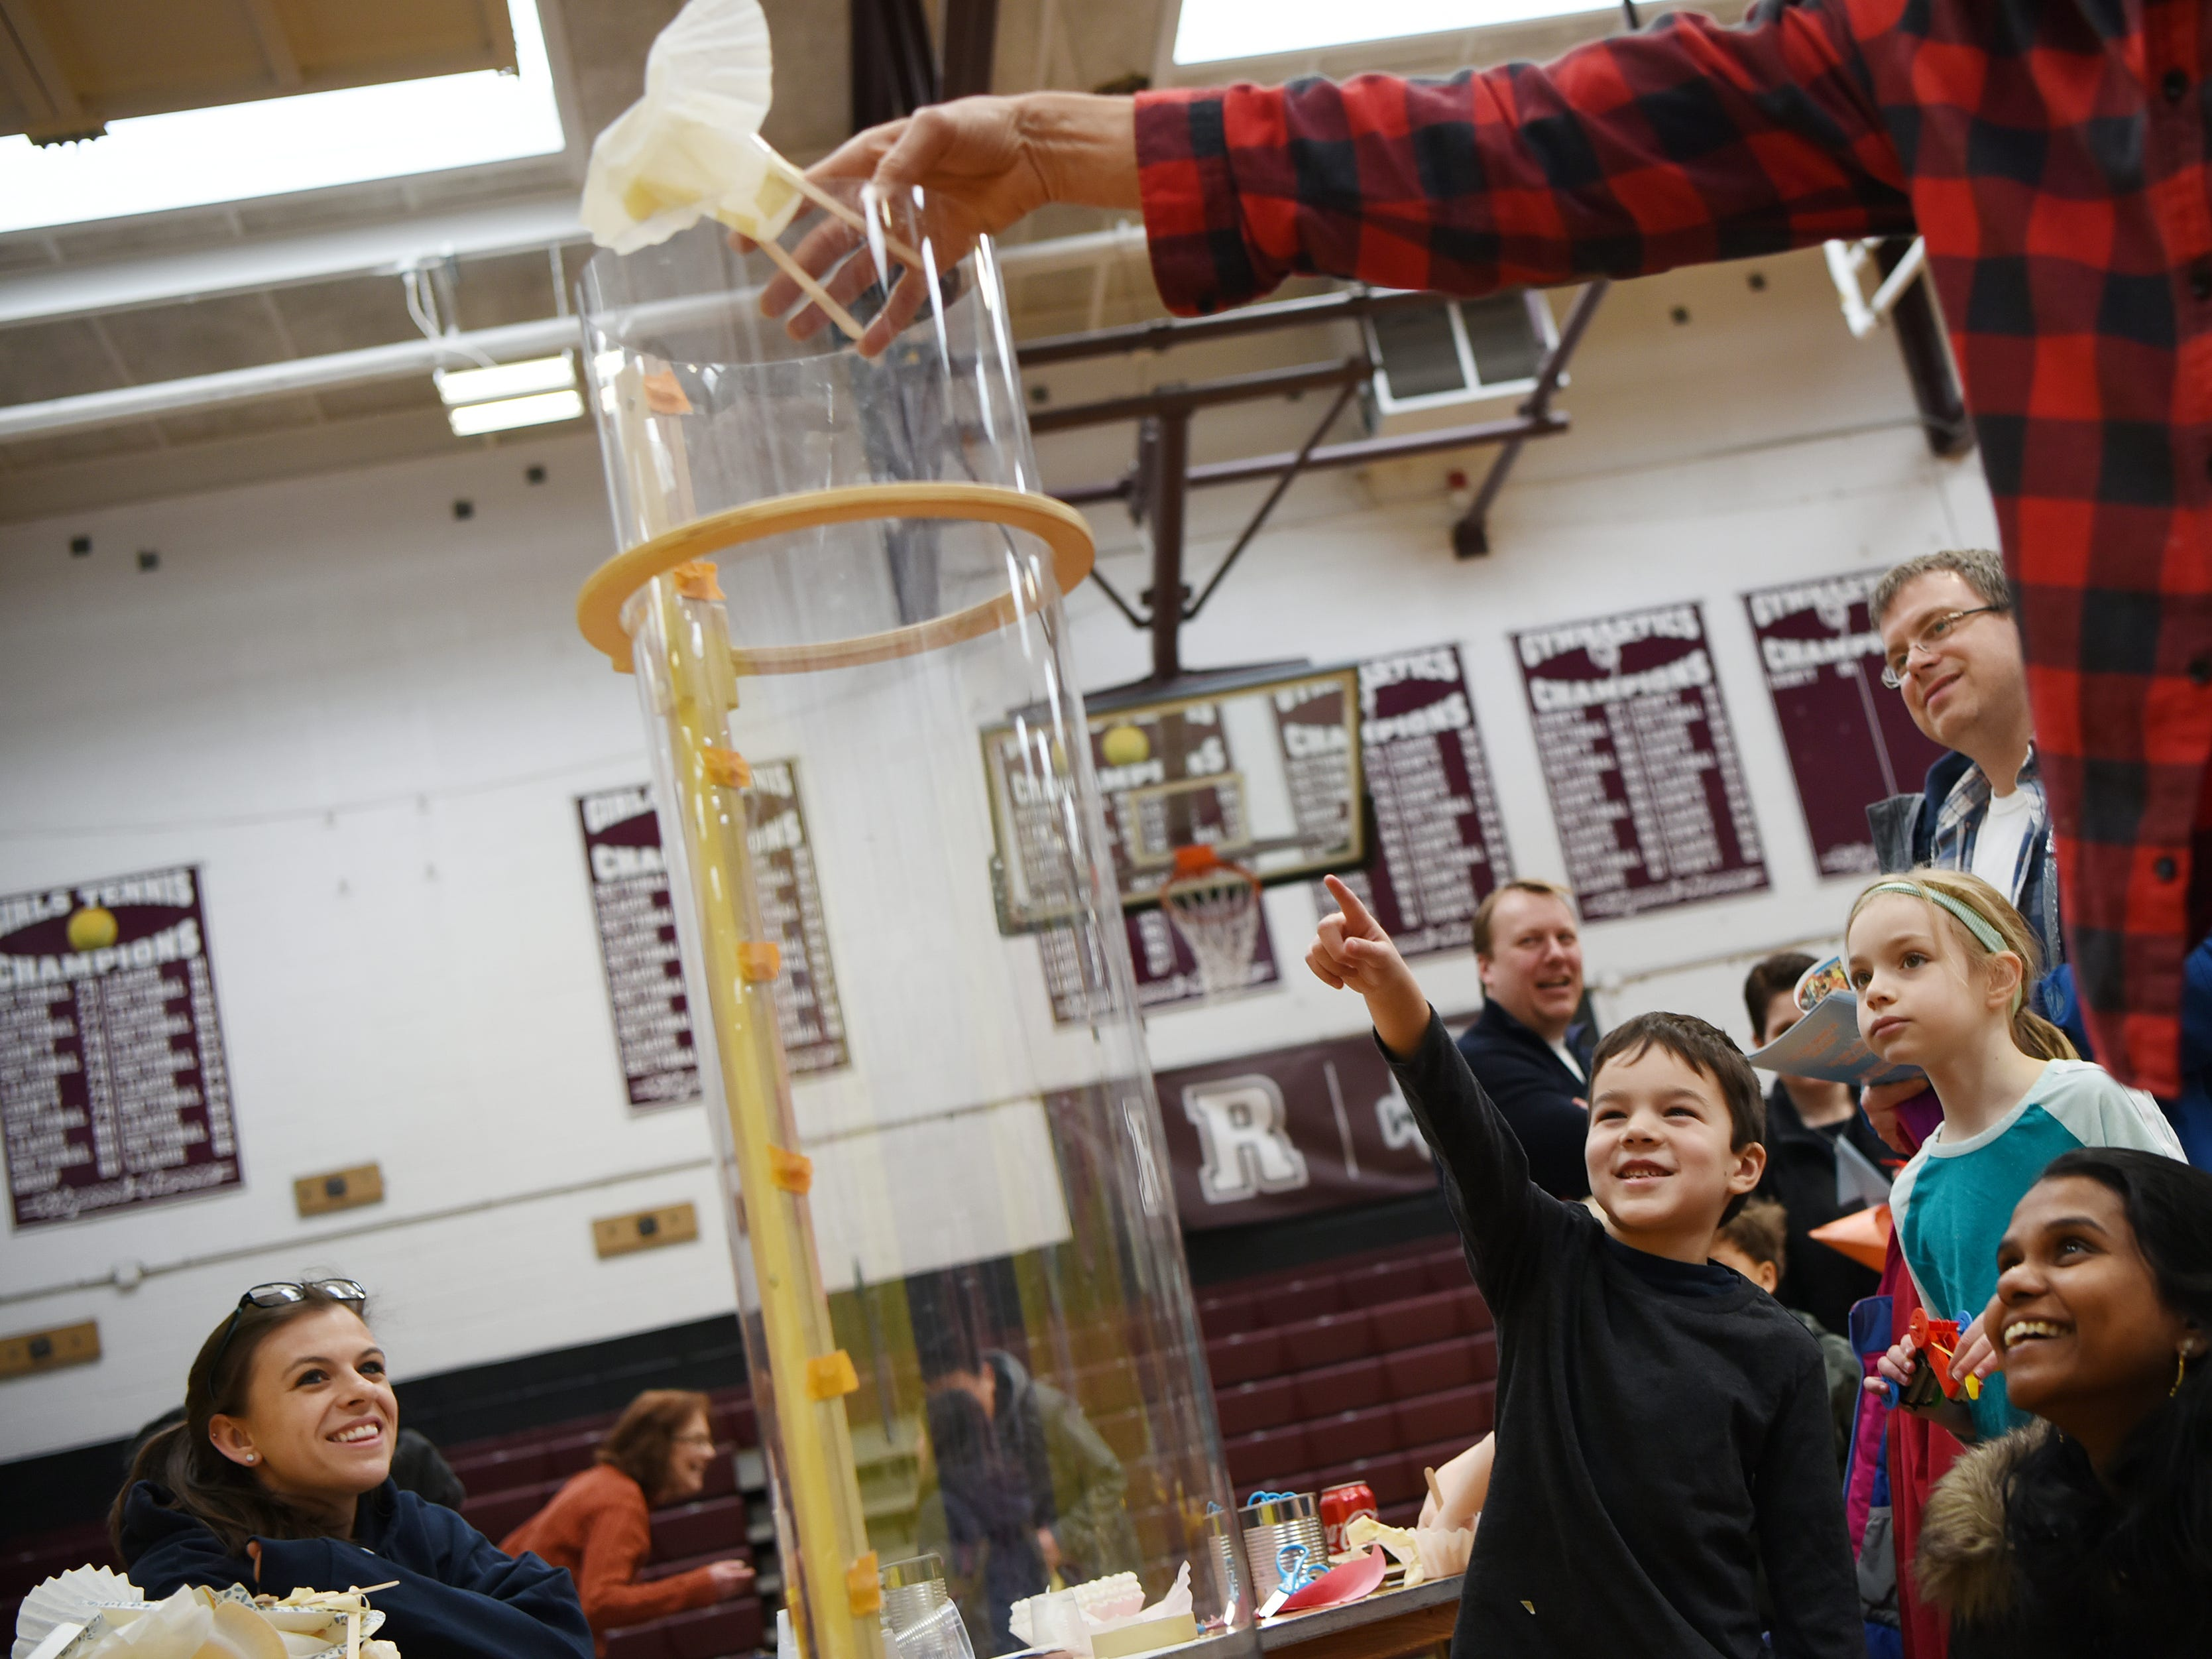 Charlotte Lucey (left) looks on while Bryce Wallace, 6, reacts to the flying machine he made. This is one of many activities during Super Science Saturday held at Ridgewood High School in Ridgewood on Saturday March 2, 2019.